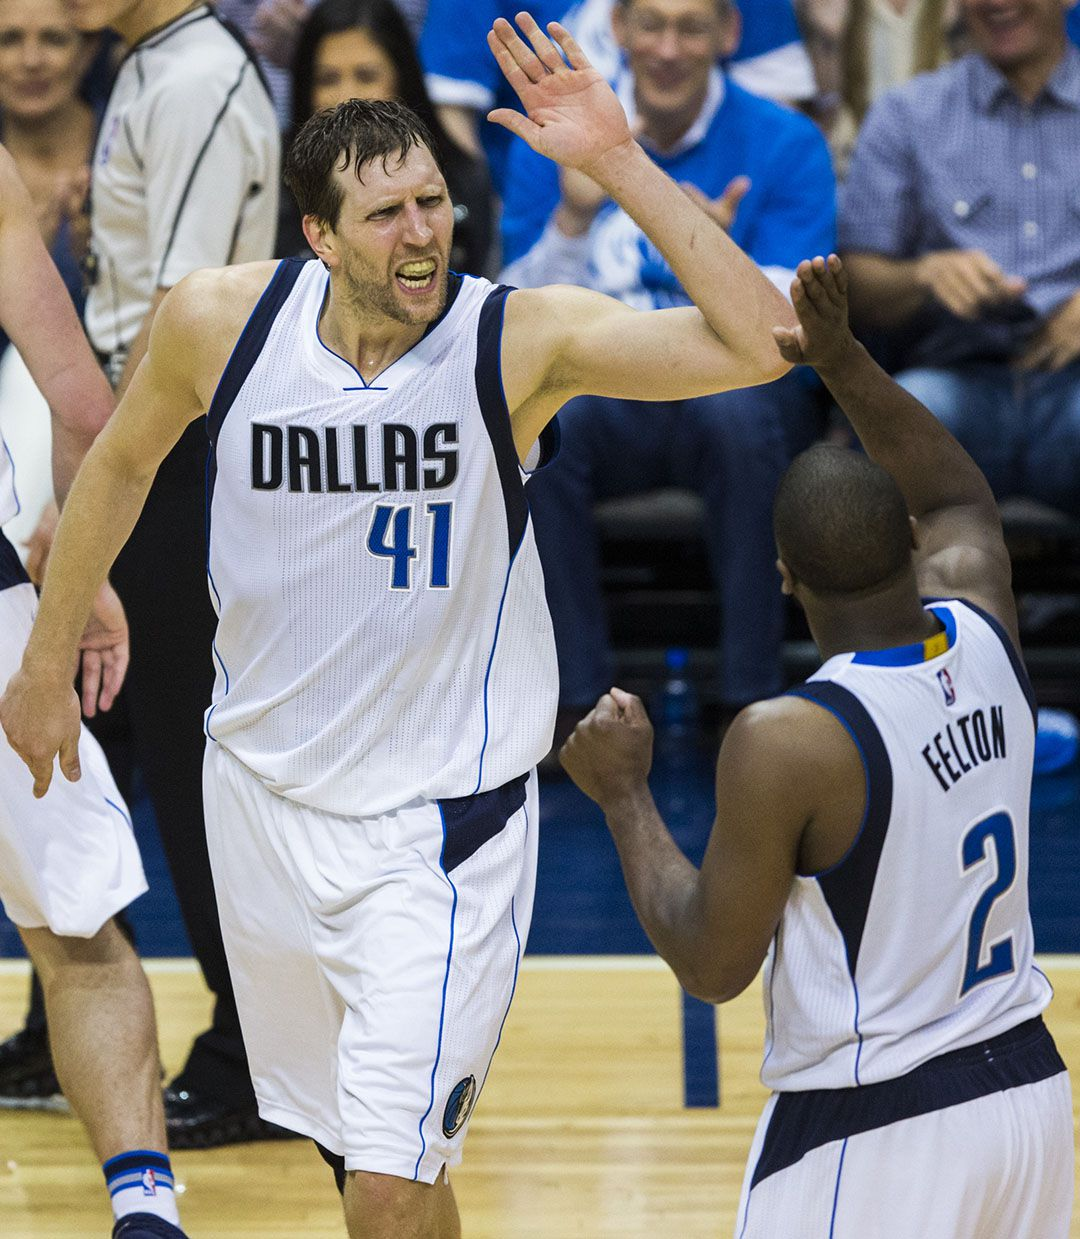 Dallas Mavericks forward Dirk Nowitzki (41) high-fives guard Raymond Felton (2) during the fourth quarter of game 4 of their series against the Oklahoma City Thunder in the first round of NBA playoffs on Saturday, April 23, 2016 at the American Airlines Center in Dallas.  (Ashley Landis/The Dallas Morning News)